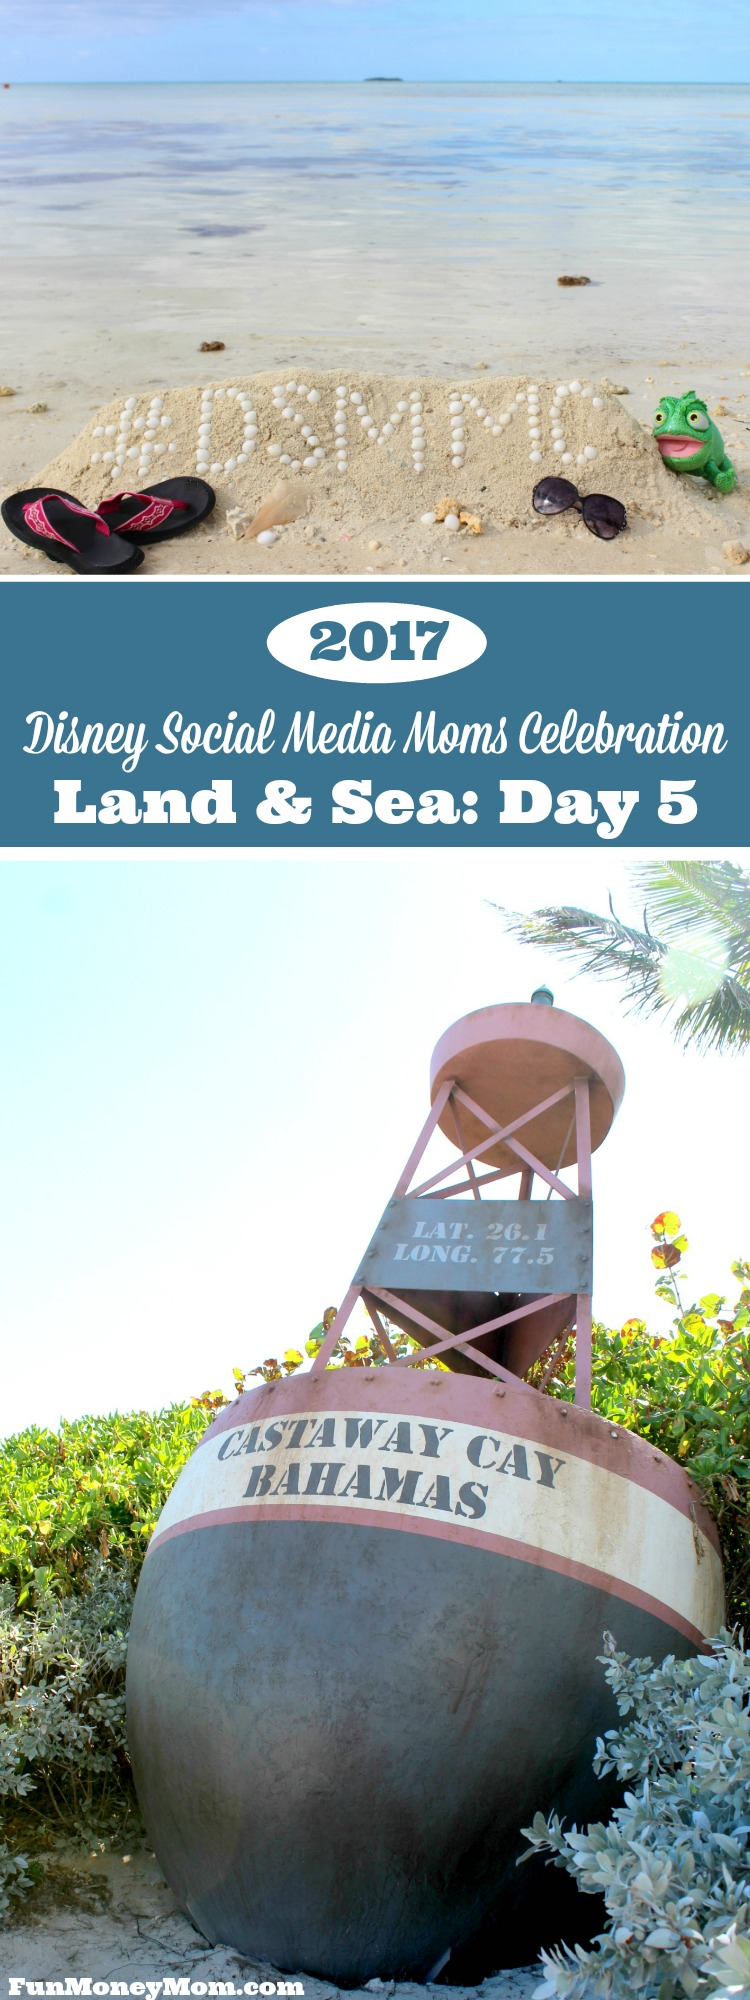 Follow along on Day 5 of the 2017 Disney Social Media Moms Celebration where I experienced the tropical paradise of Castaway Cay, Disney's very own private island in the Bahamas.